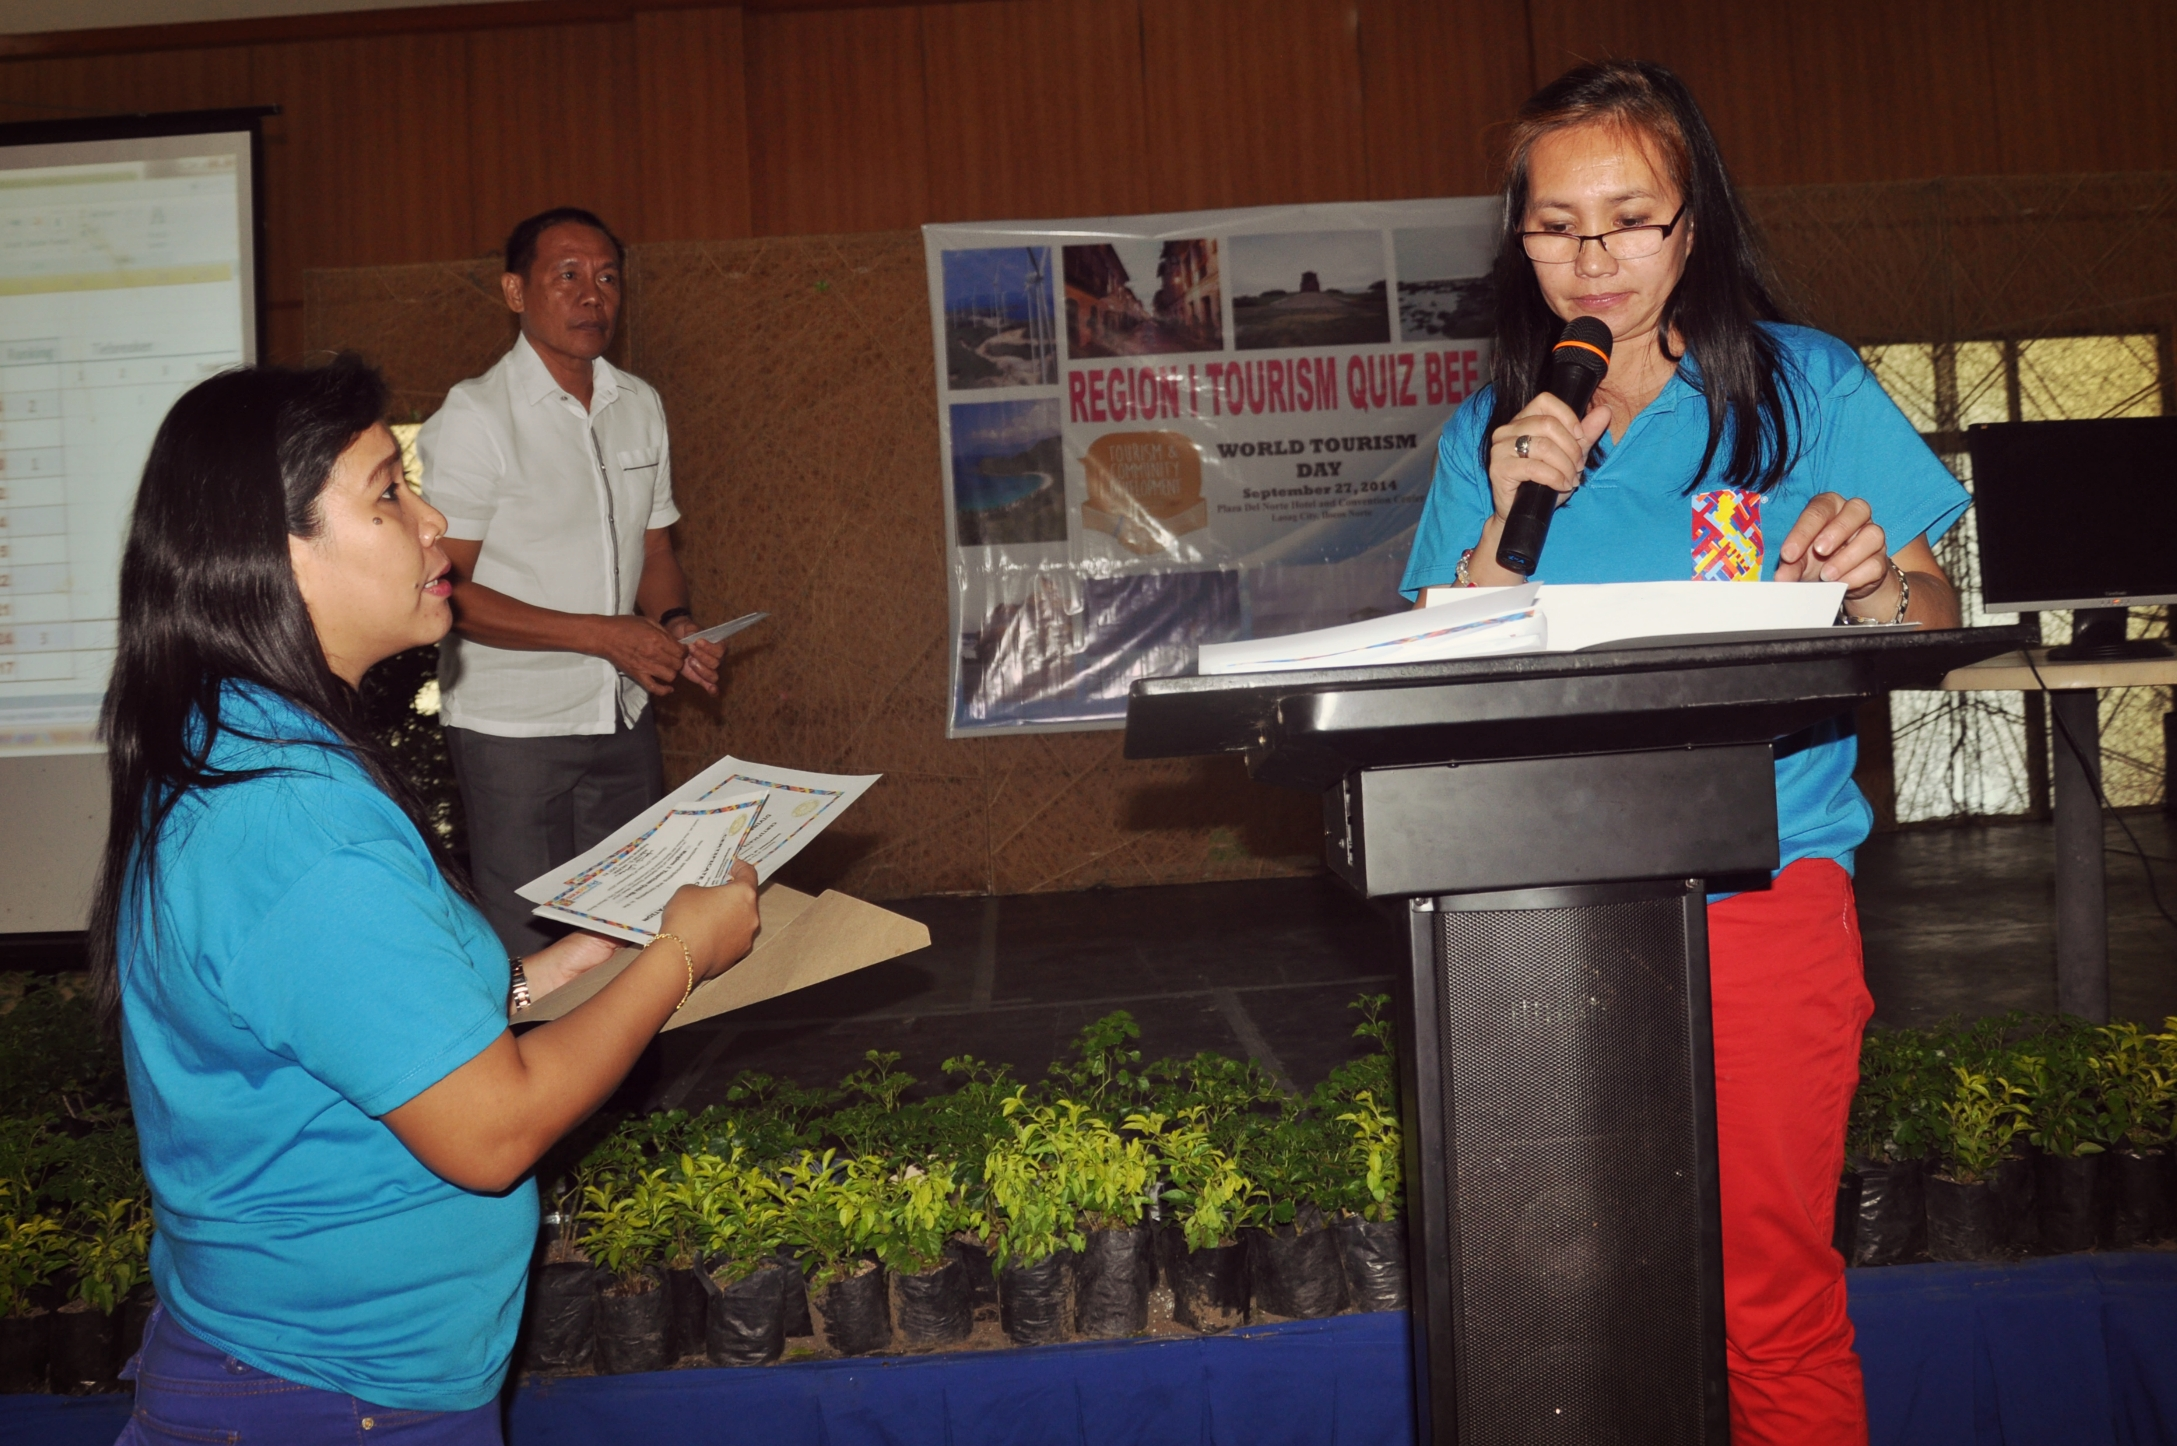 DoT Region 1 Tourism Quiz Bee